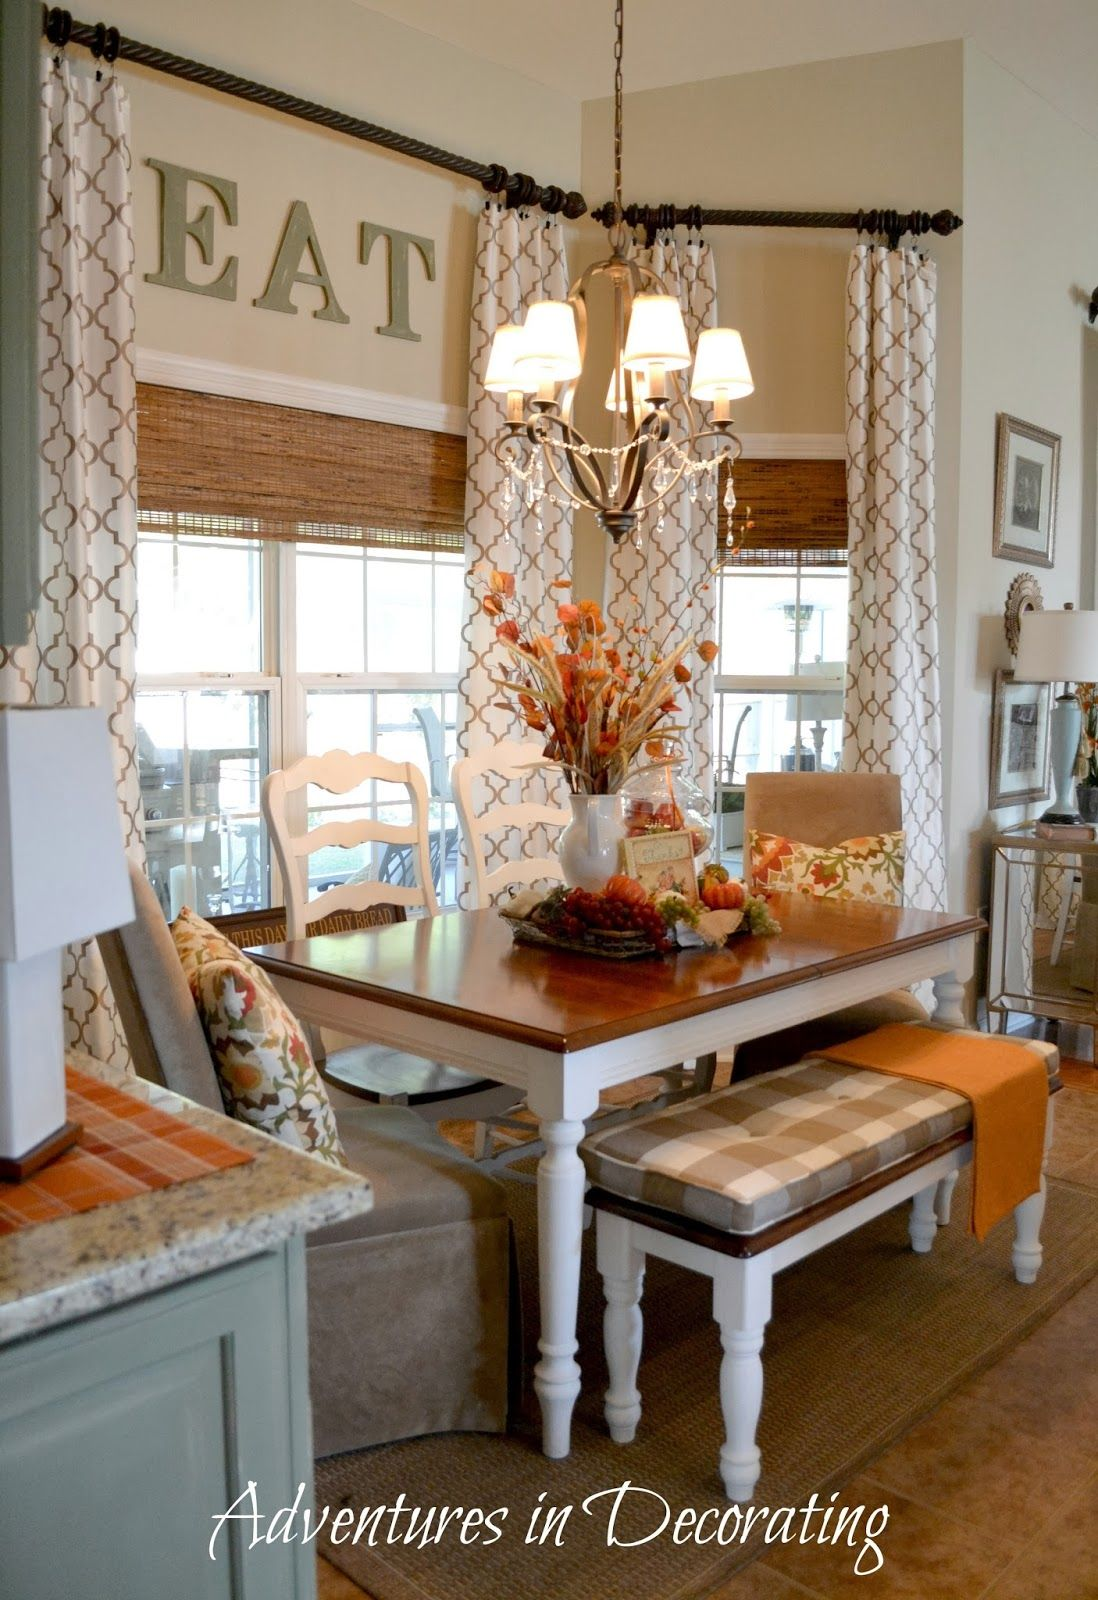 I Love The Way This Nook Is Set Up With The Long Table